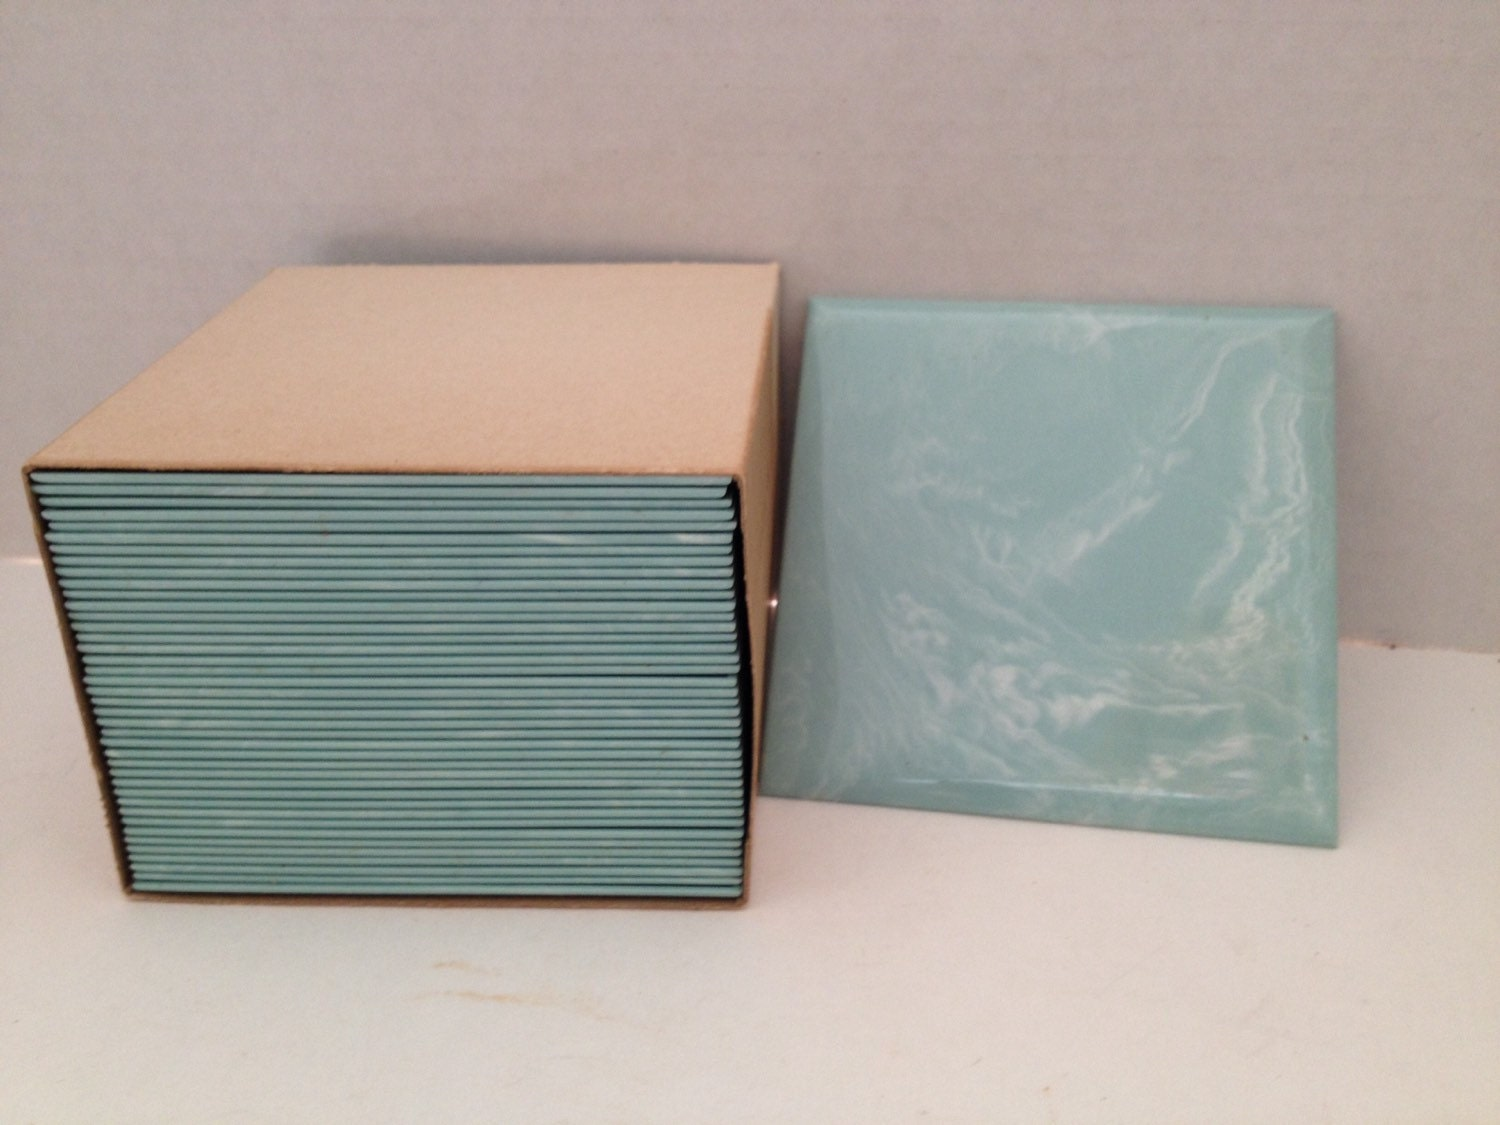 Plastic wall tiles lot of 110 blue turquoise styron montgomery